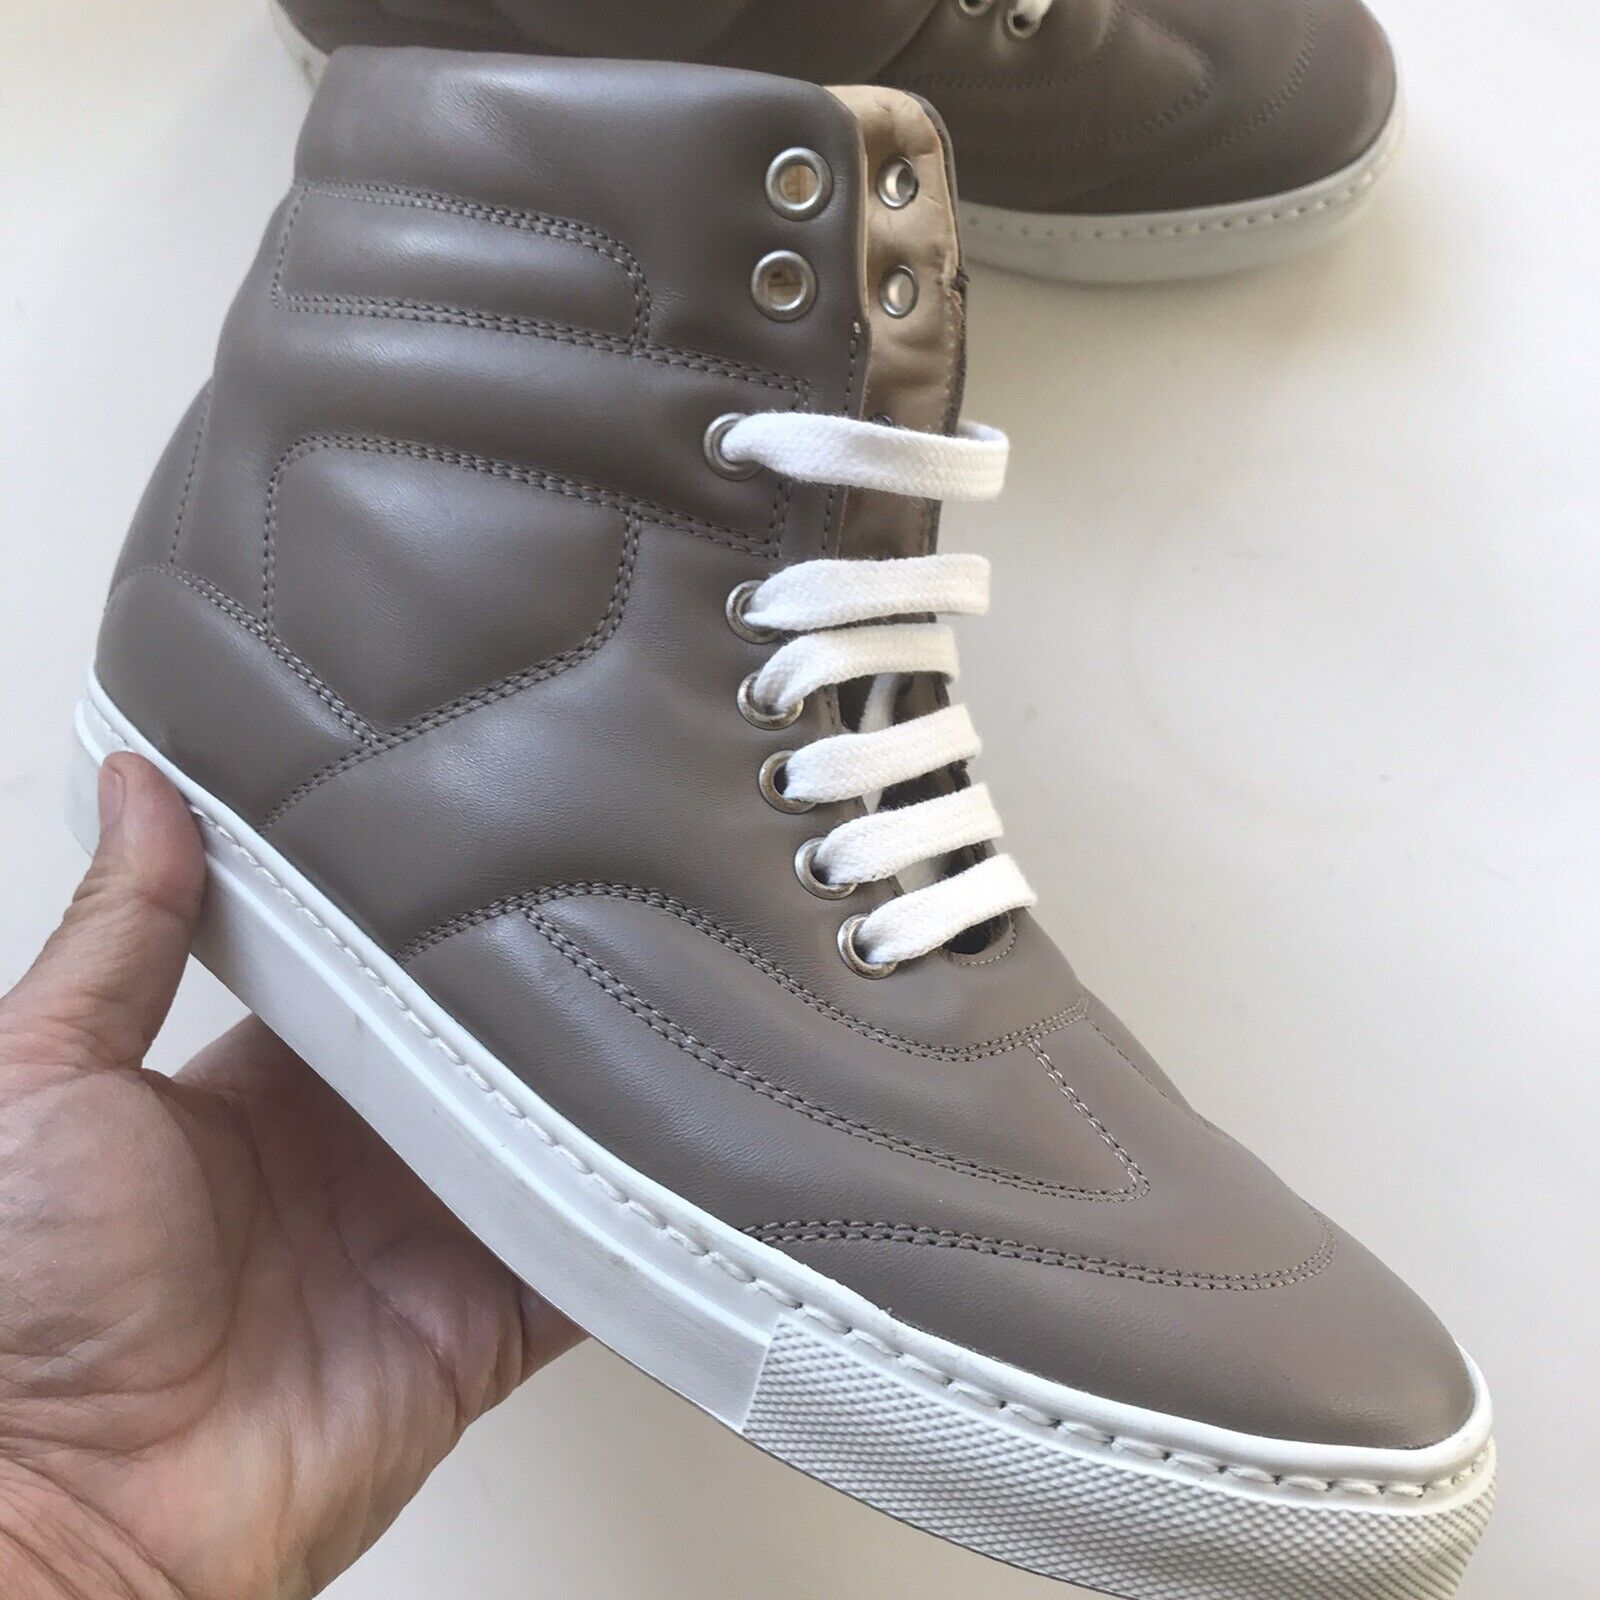 MM6 Martin Margiela Woman's Leather Sneakers Shoe… - image 3